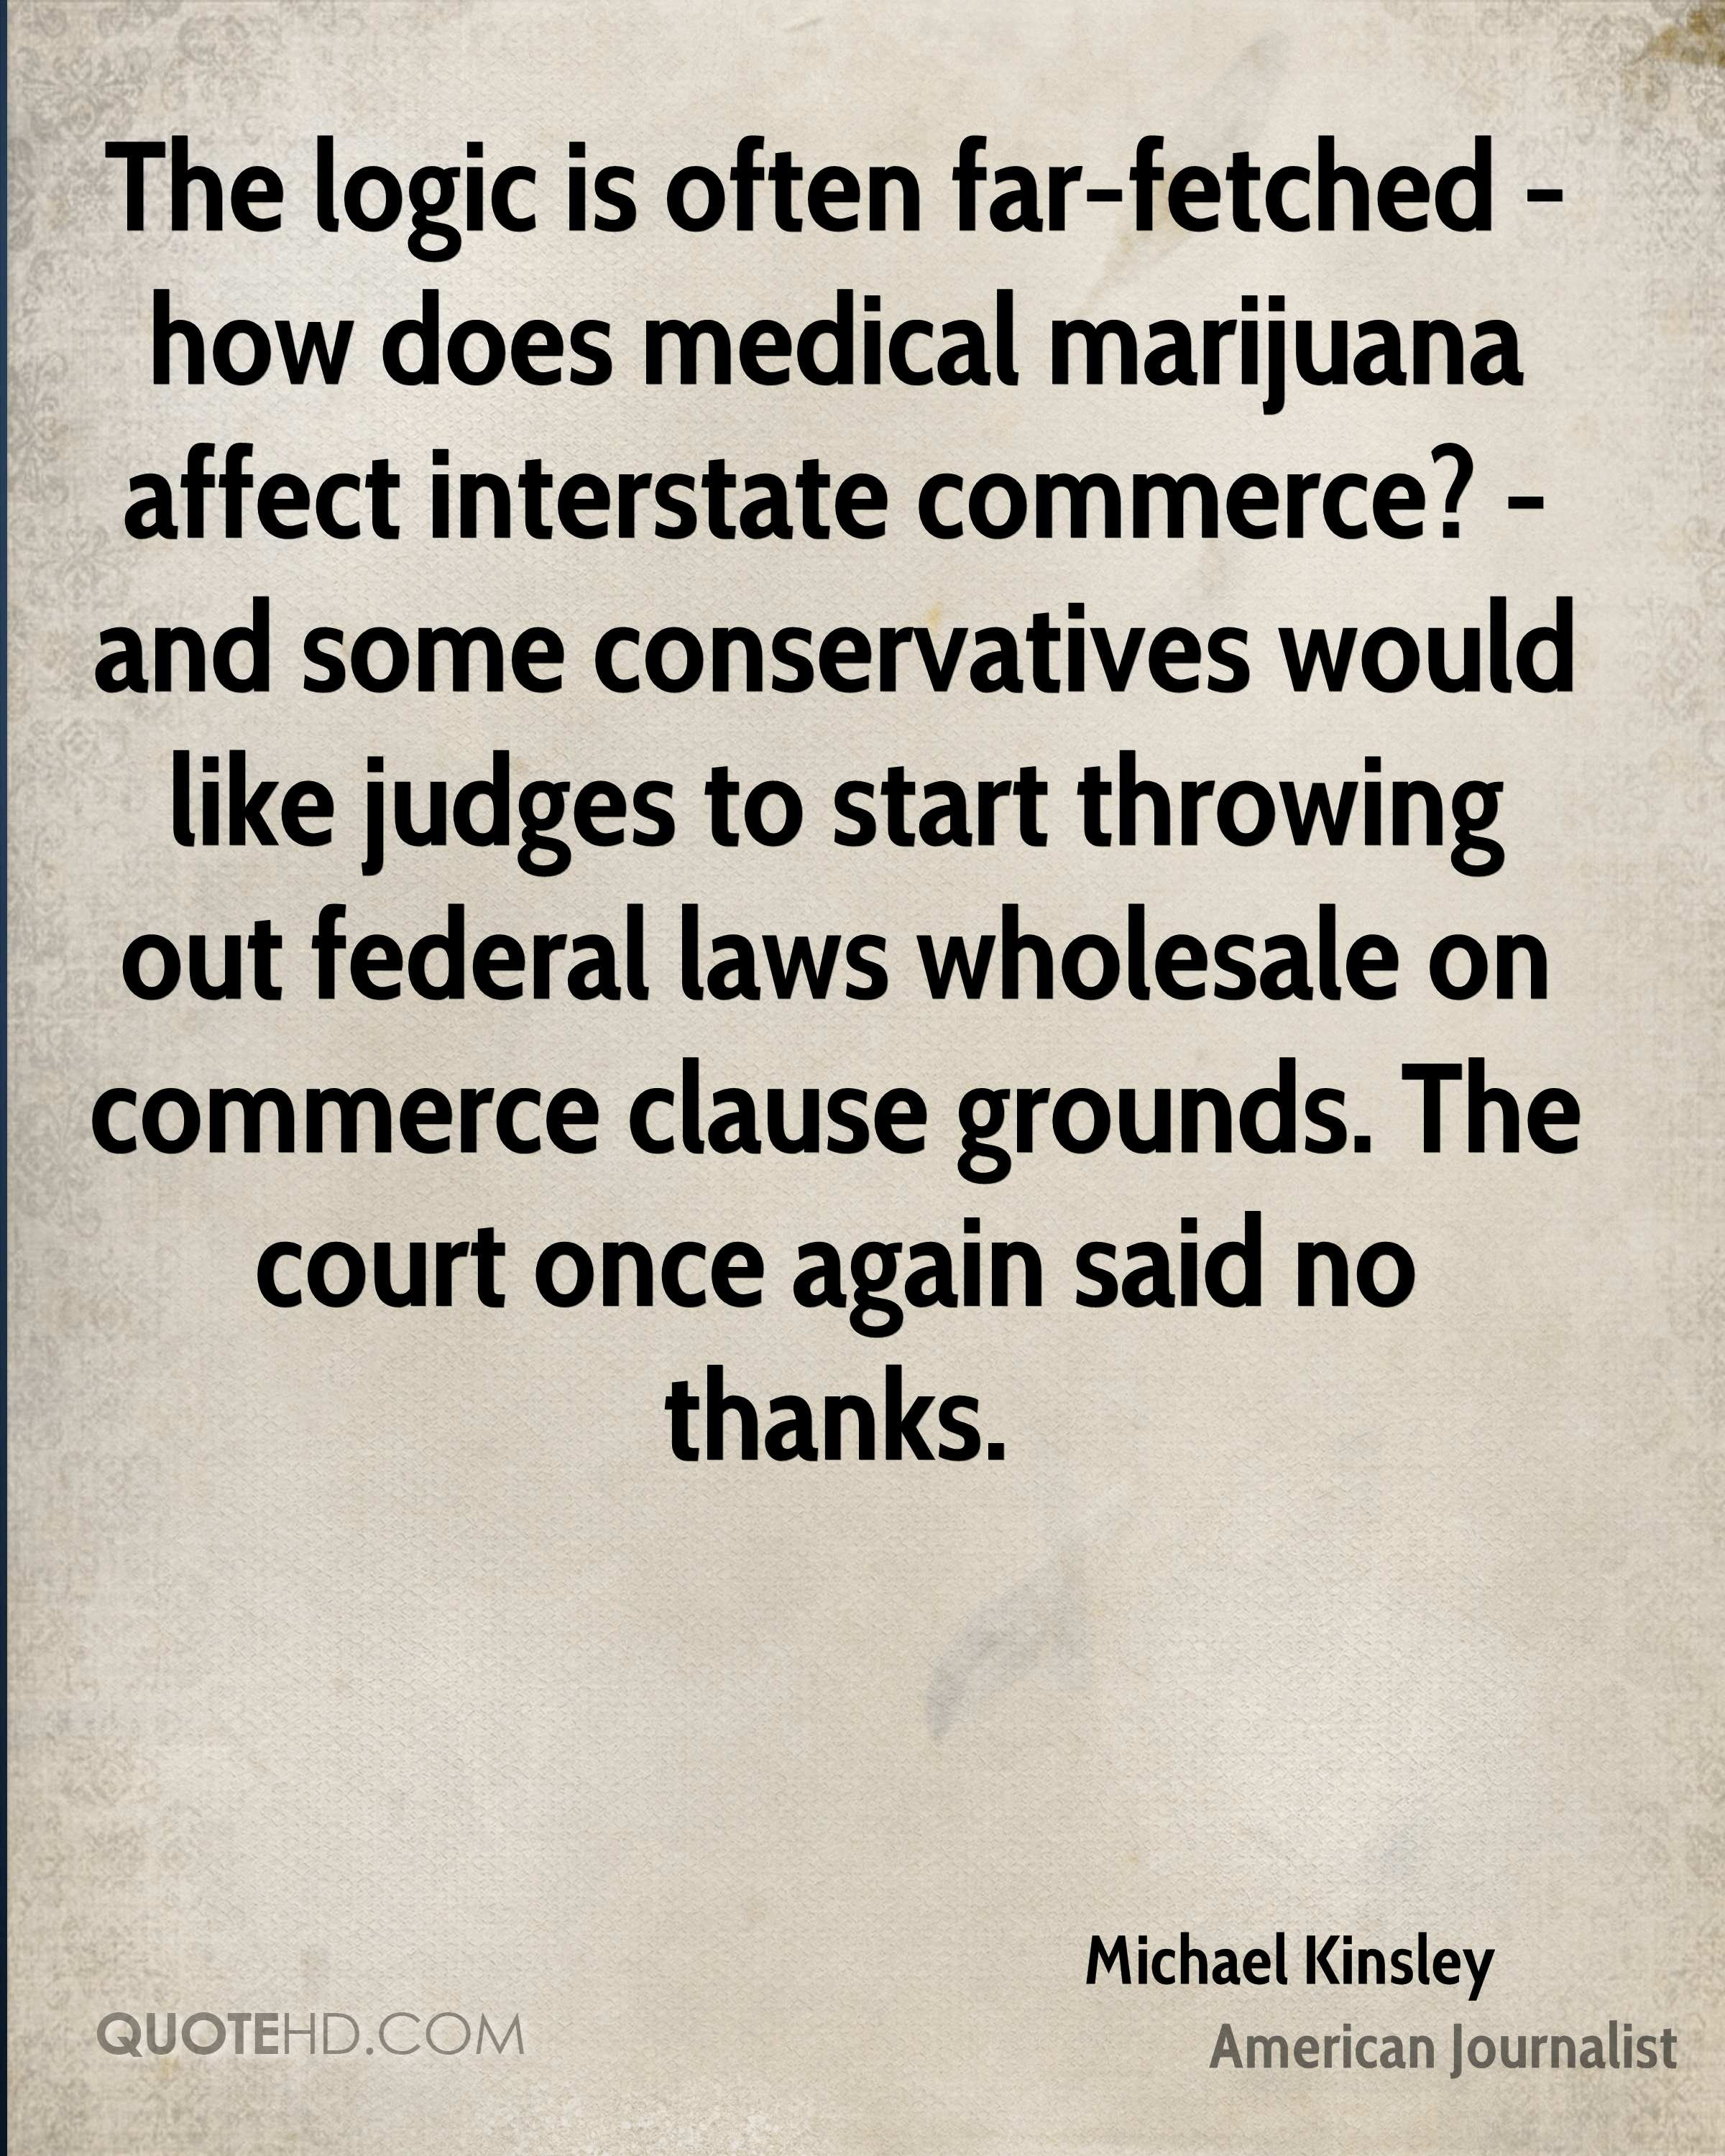 The logic is often far-fetched - how does medical marijuana affect interstate commerce? - and some conservatives would like judges to start throwing out federal laws wholesale on commerce clause grounds. The court once again said no thanks.